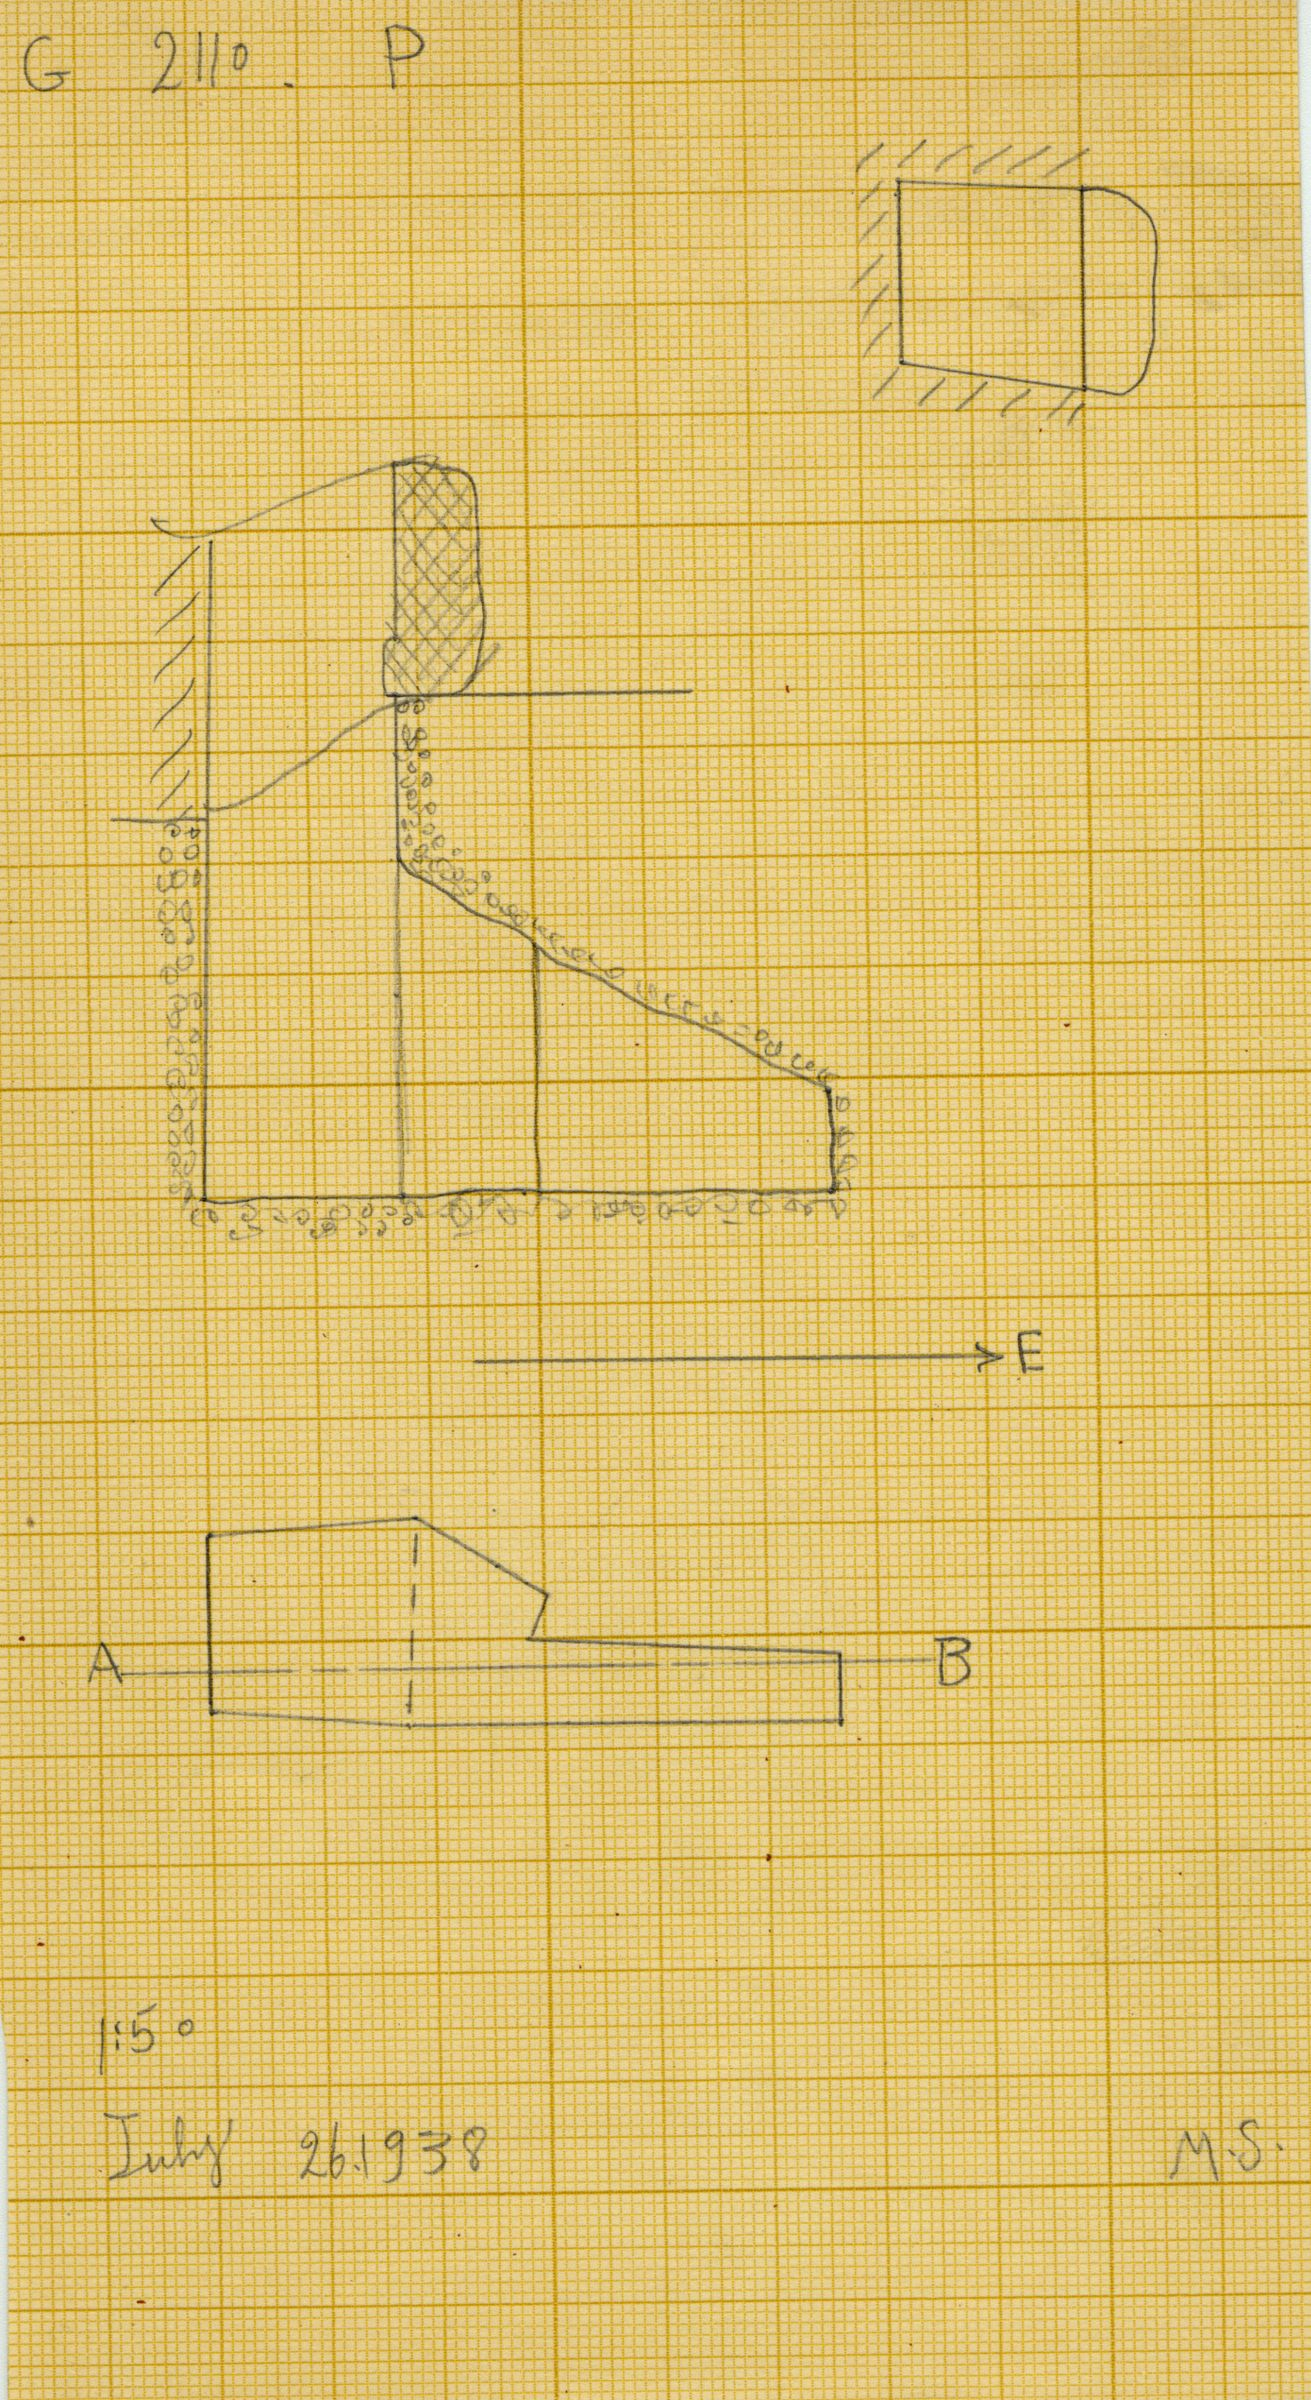 Maps and plans: G 2110, Shaft P